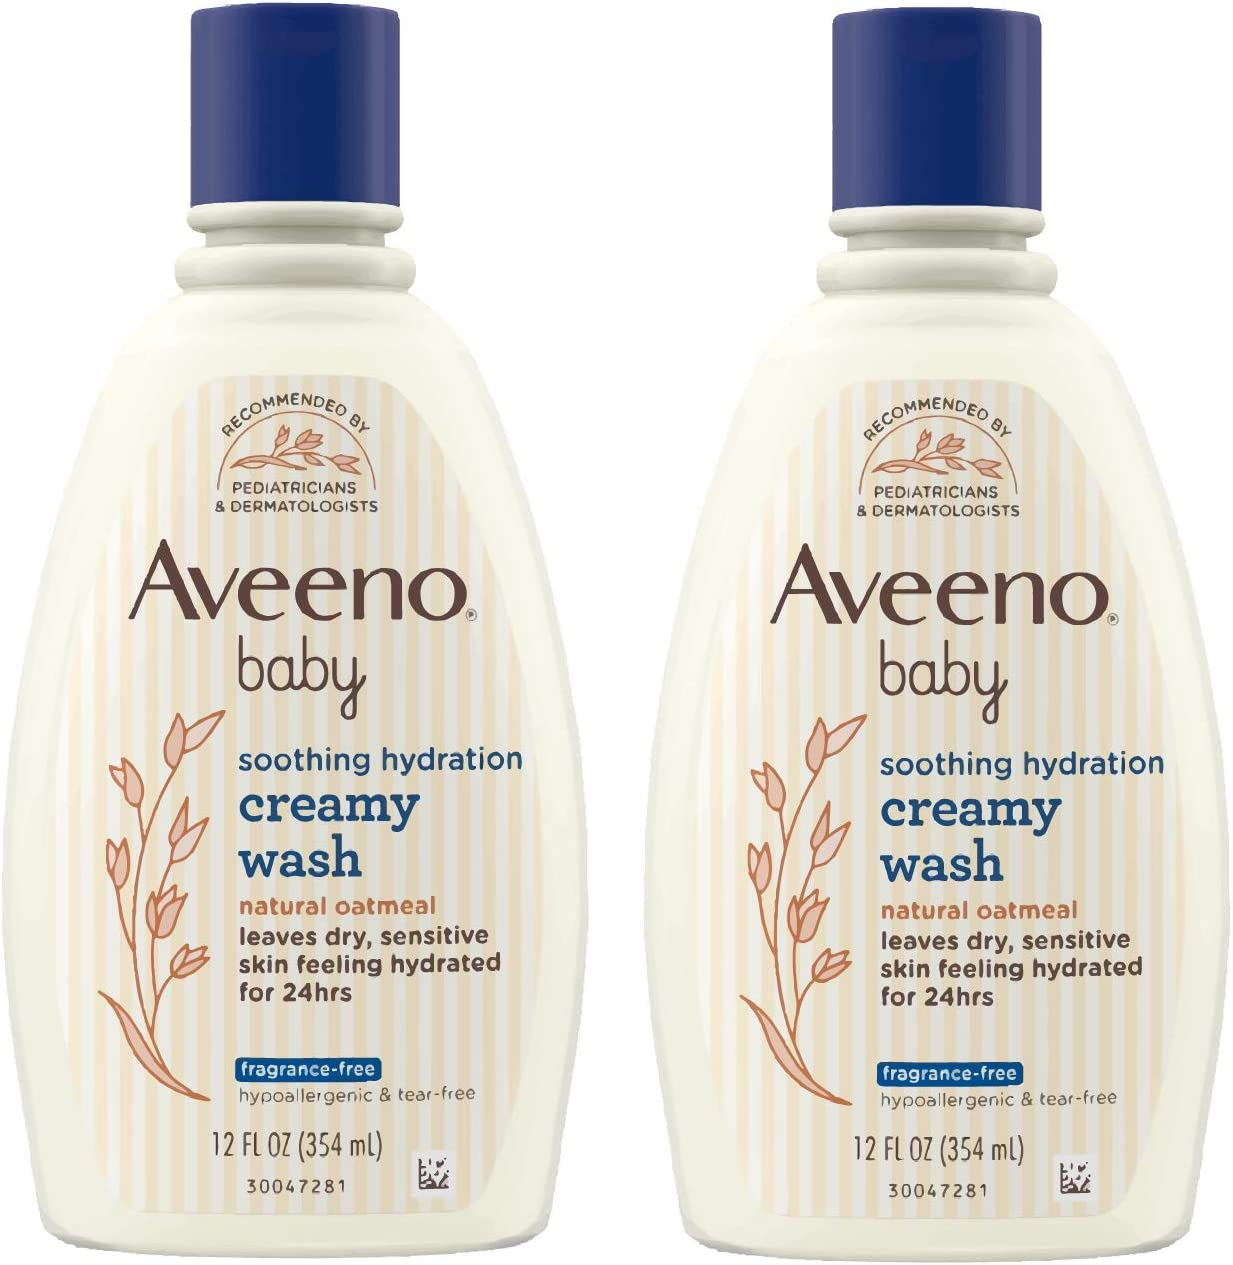 Aveeno Baby Soothing Hydration Creamy Body Wash with Natural Oatmeal, Baby Bath Wash for Dry & Sensitive Skin, Hypoallergenic, Fragrance-, Paraben- & Tear-Free Formula, 12 fl. oz (Pack of 2)